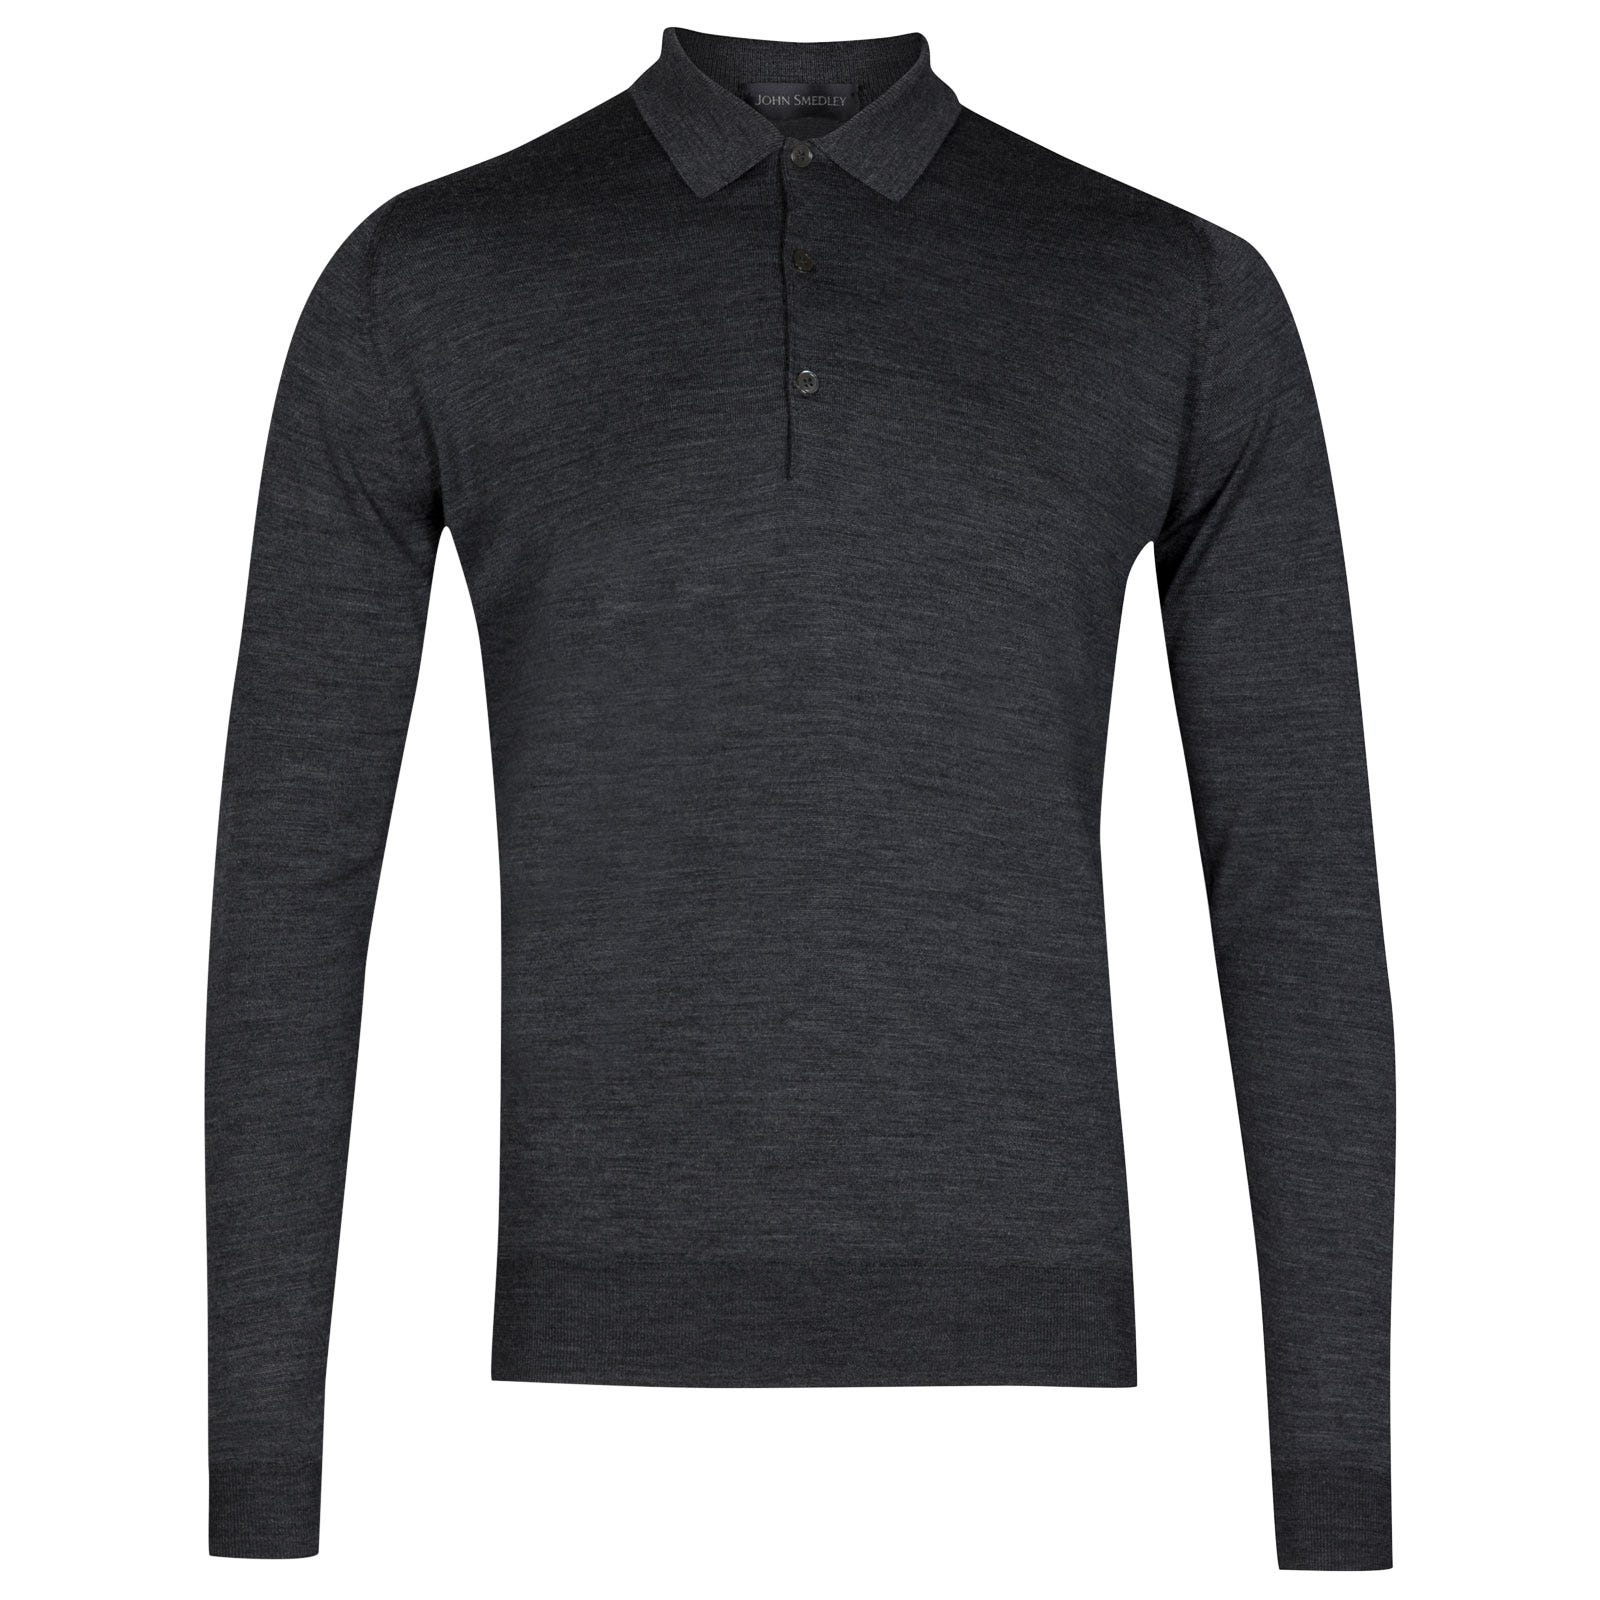 John Smedley belper Merino Wool Shirt in Charcoal-XL